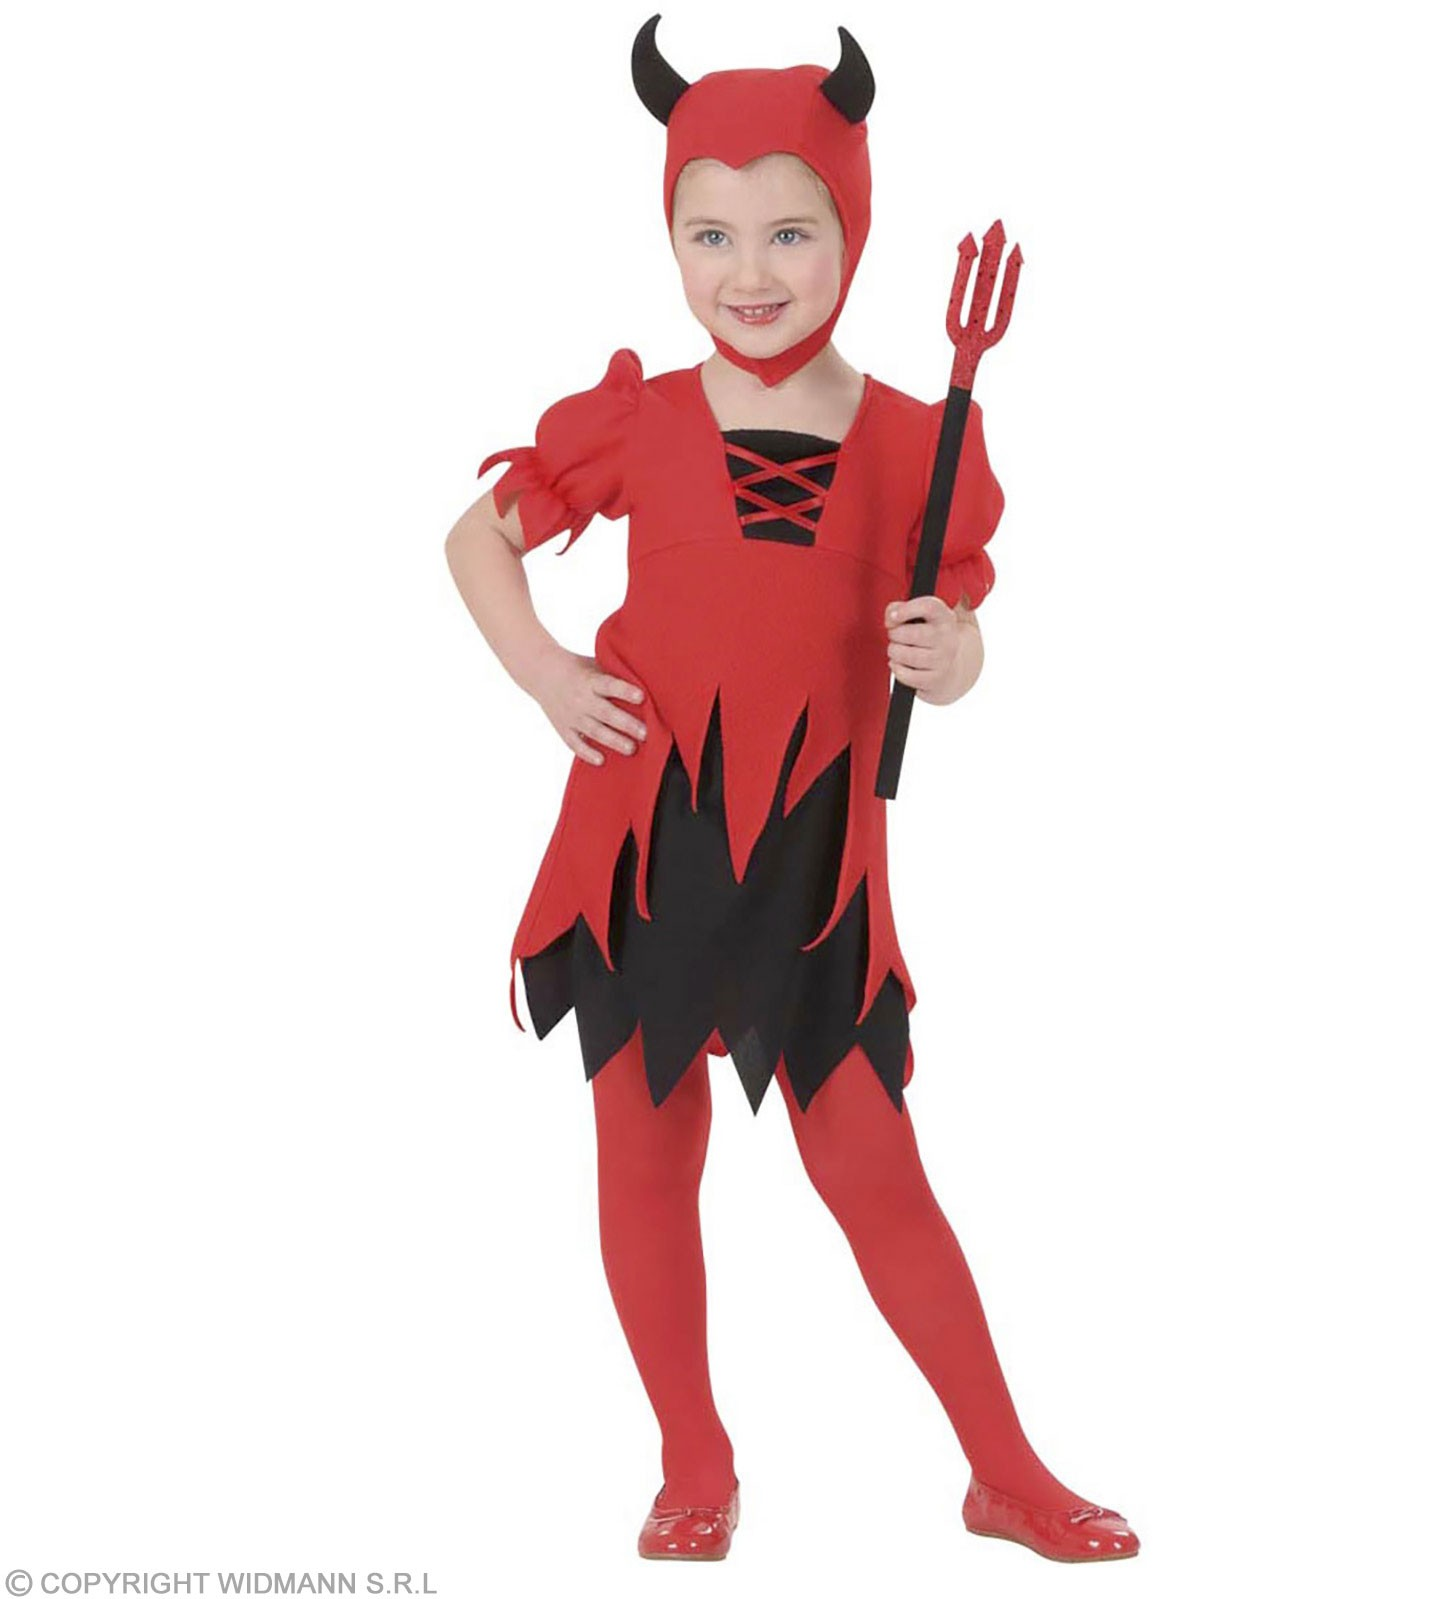 Lil Devil Toddler Costume Costume Kids Age 3-4 (Halloween)